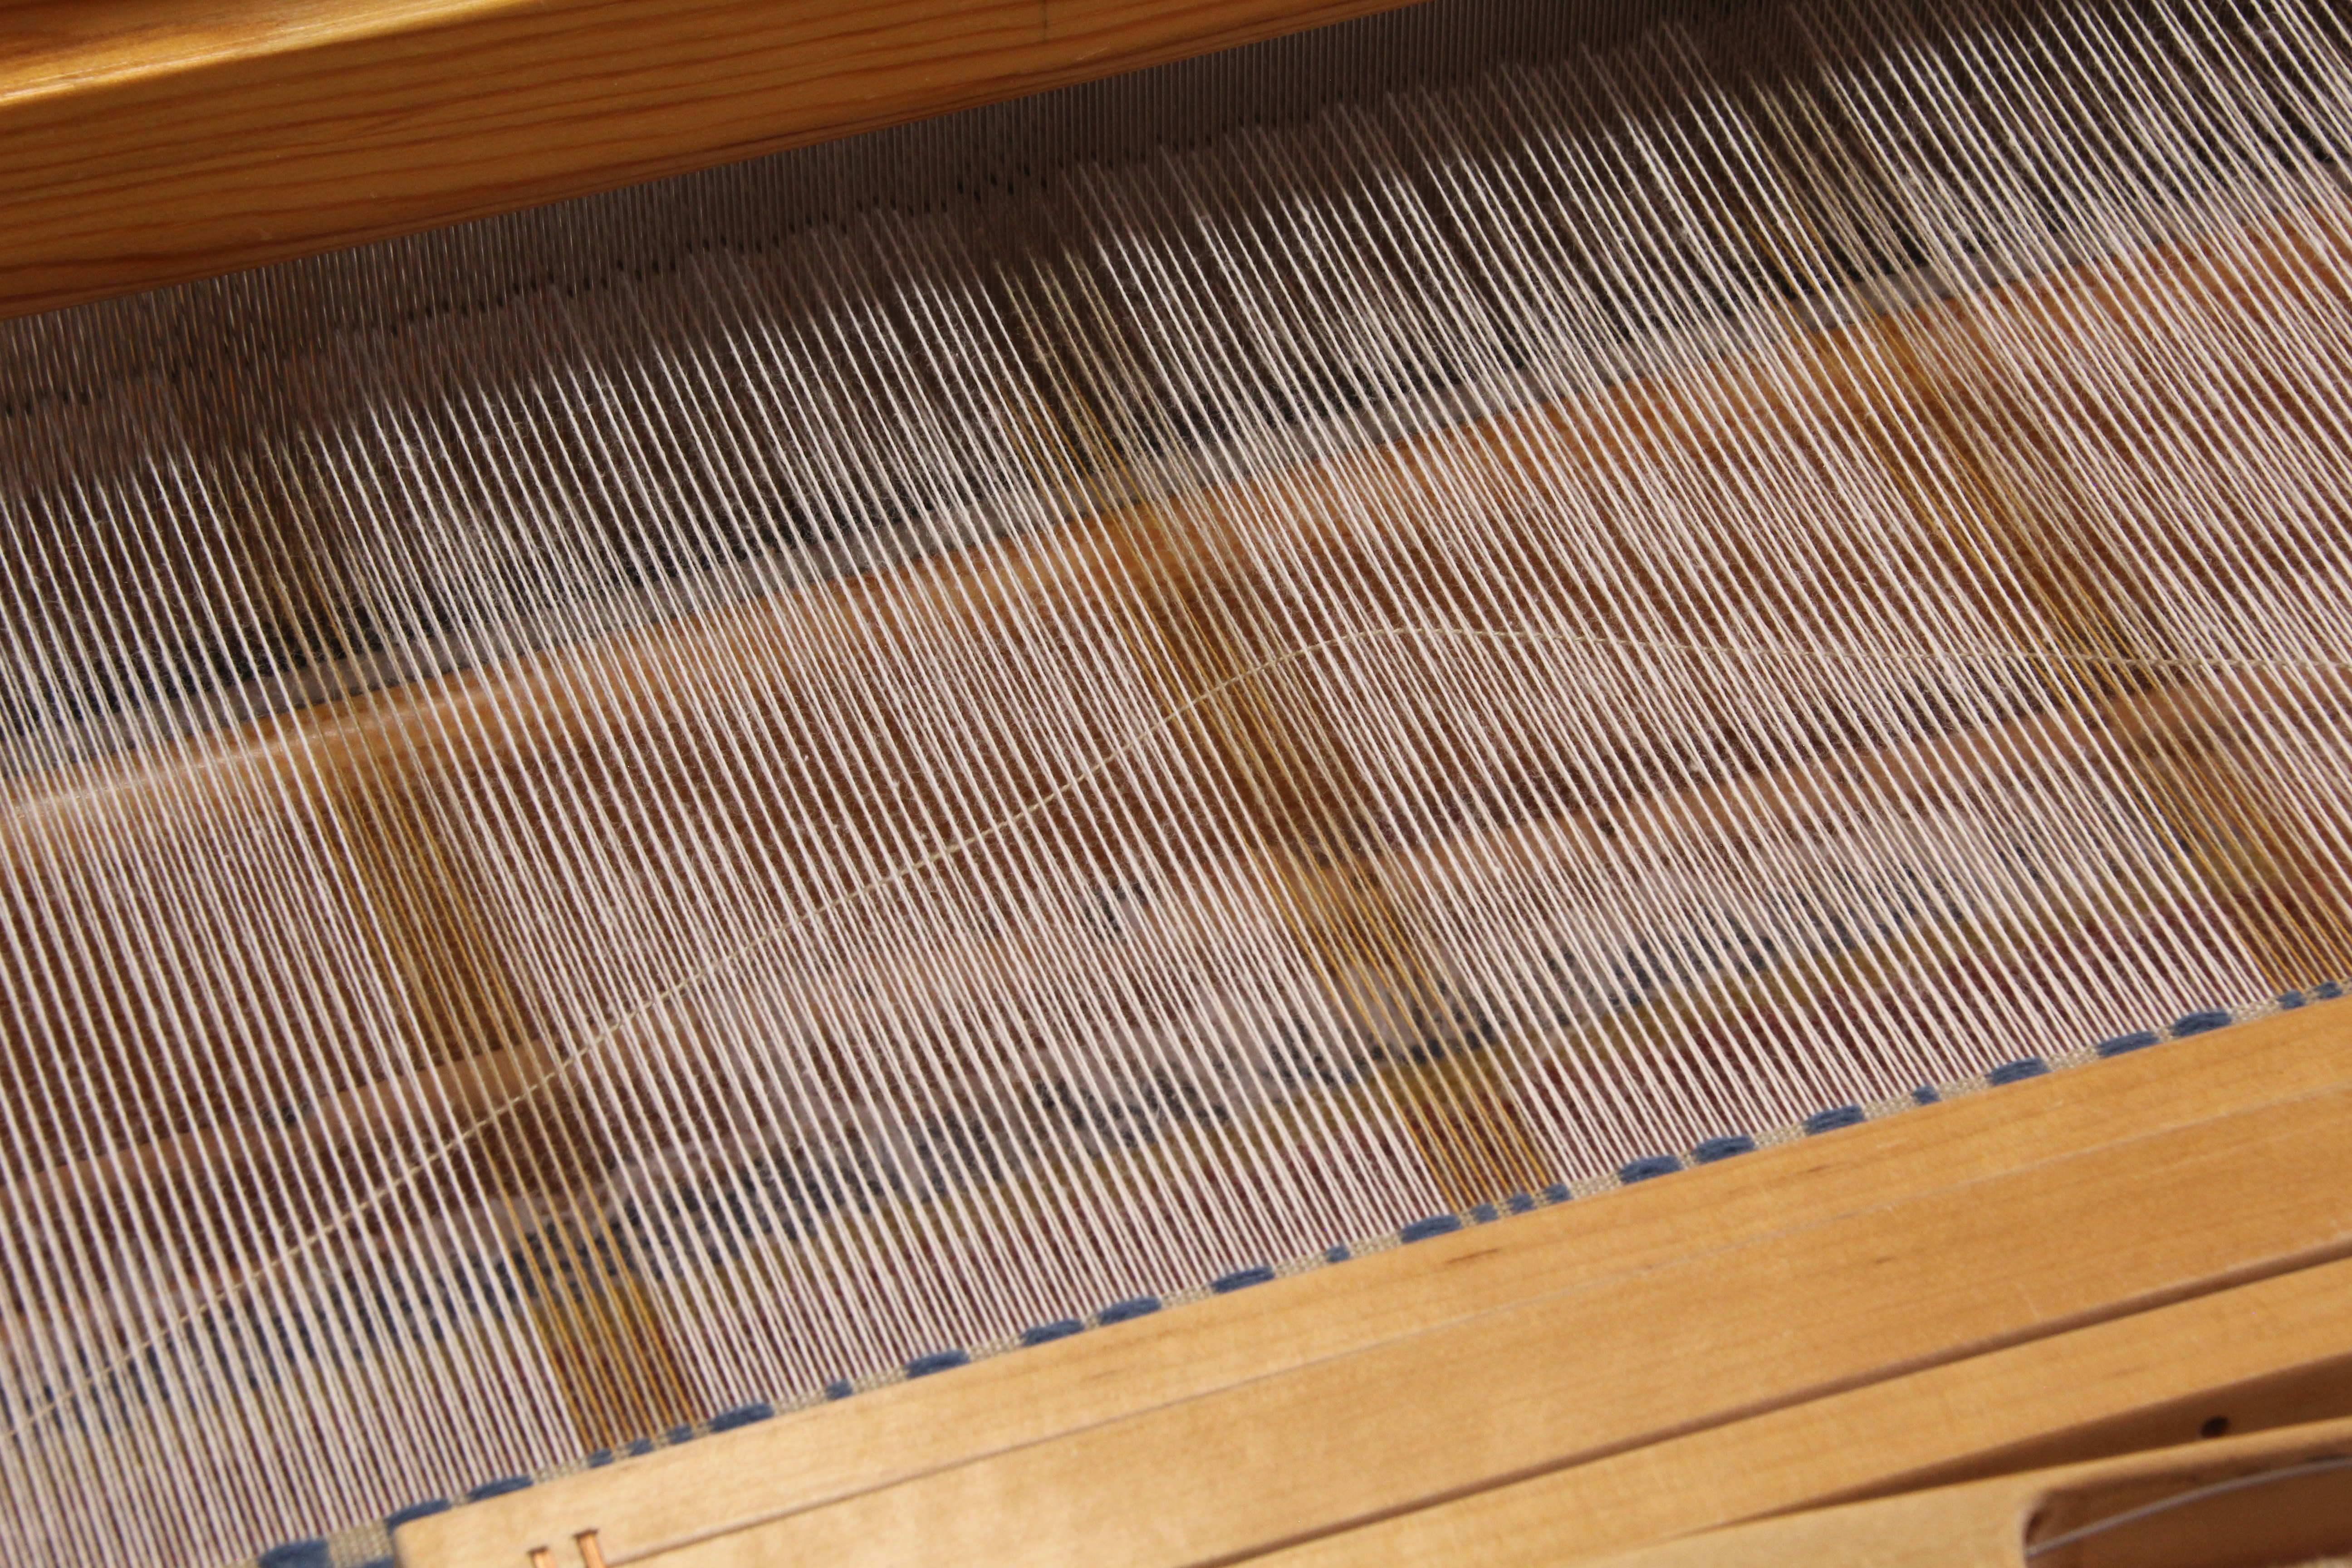 Weaving monksbelt with weft rep. How to.